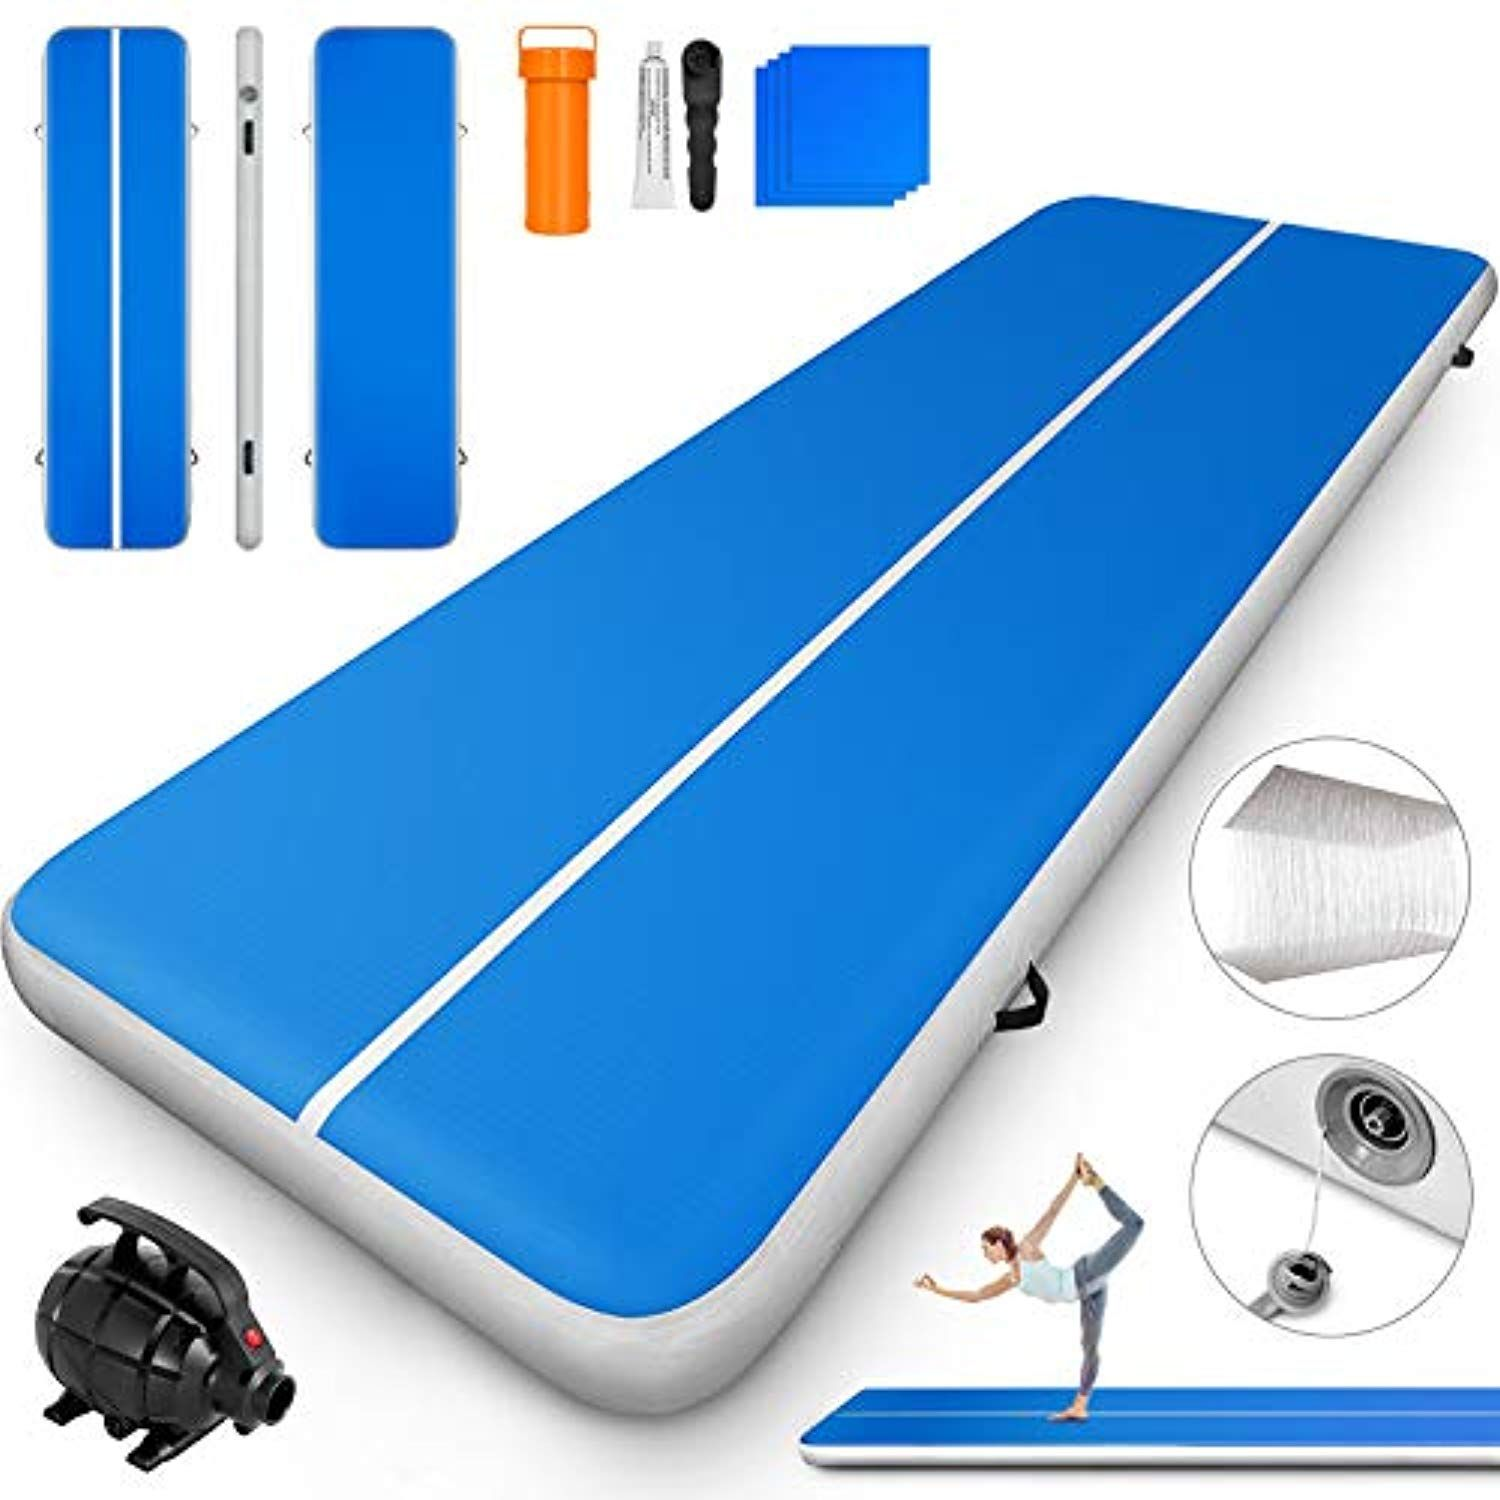 Happybuy Inflatable Gymnastics Tumbling Mat Air Tumbling Track W Electric Pump Air Floor Mat For Home U Gymnastics Tumbling Mat Tumble Mats Tumbling Gymnastics